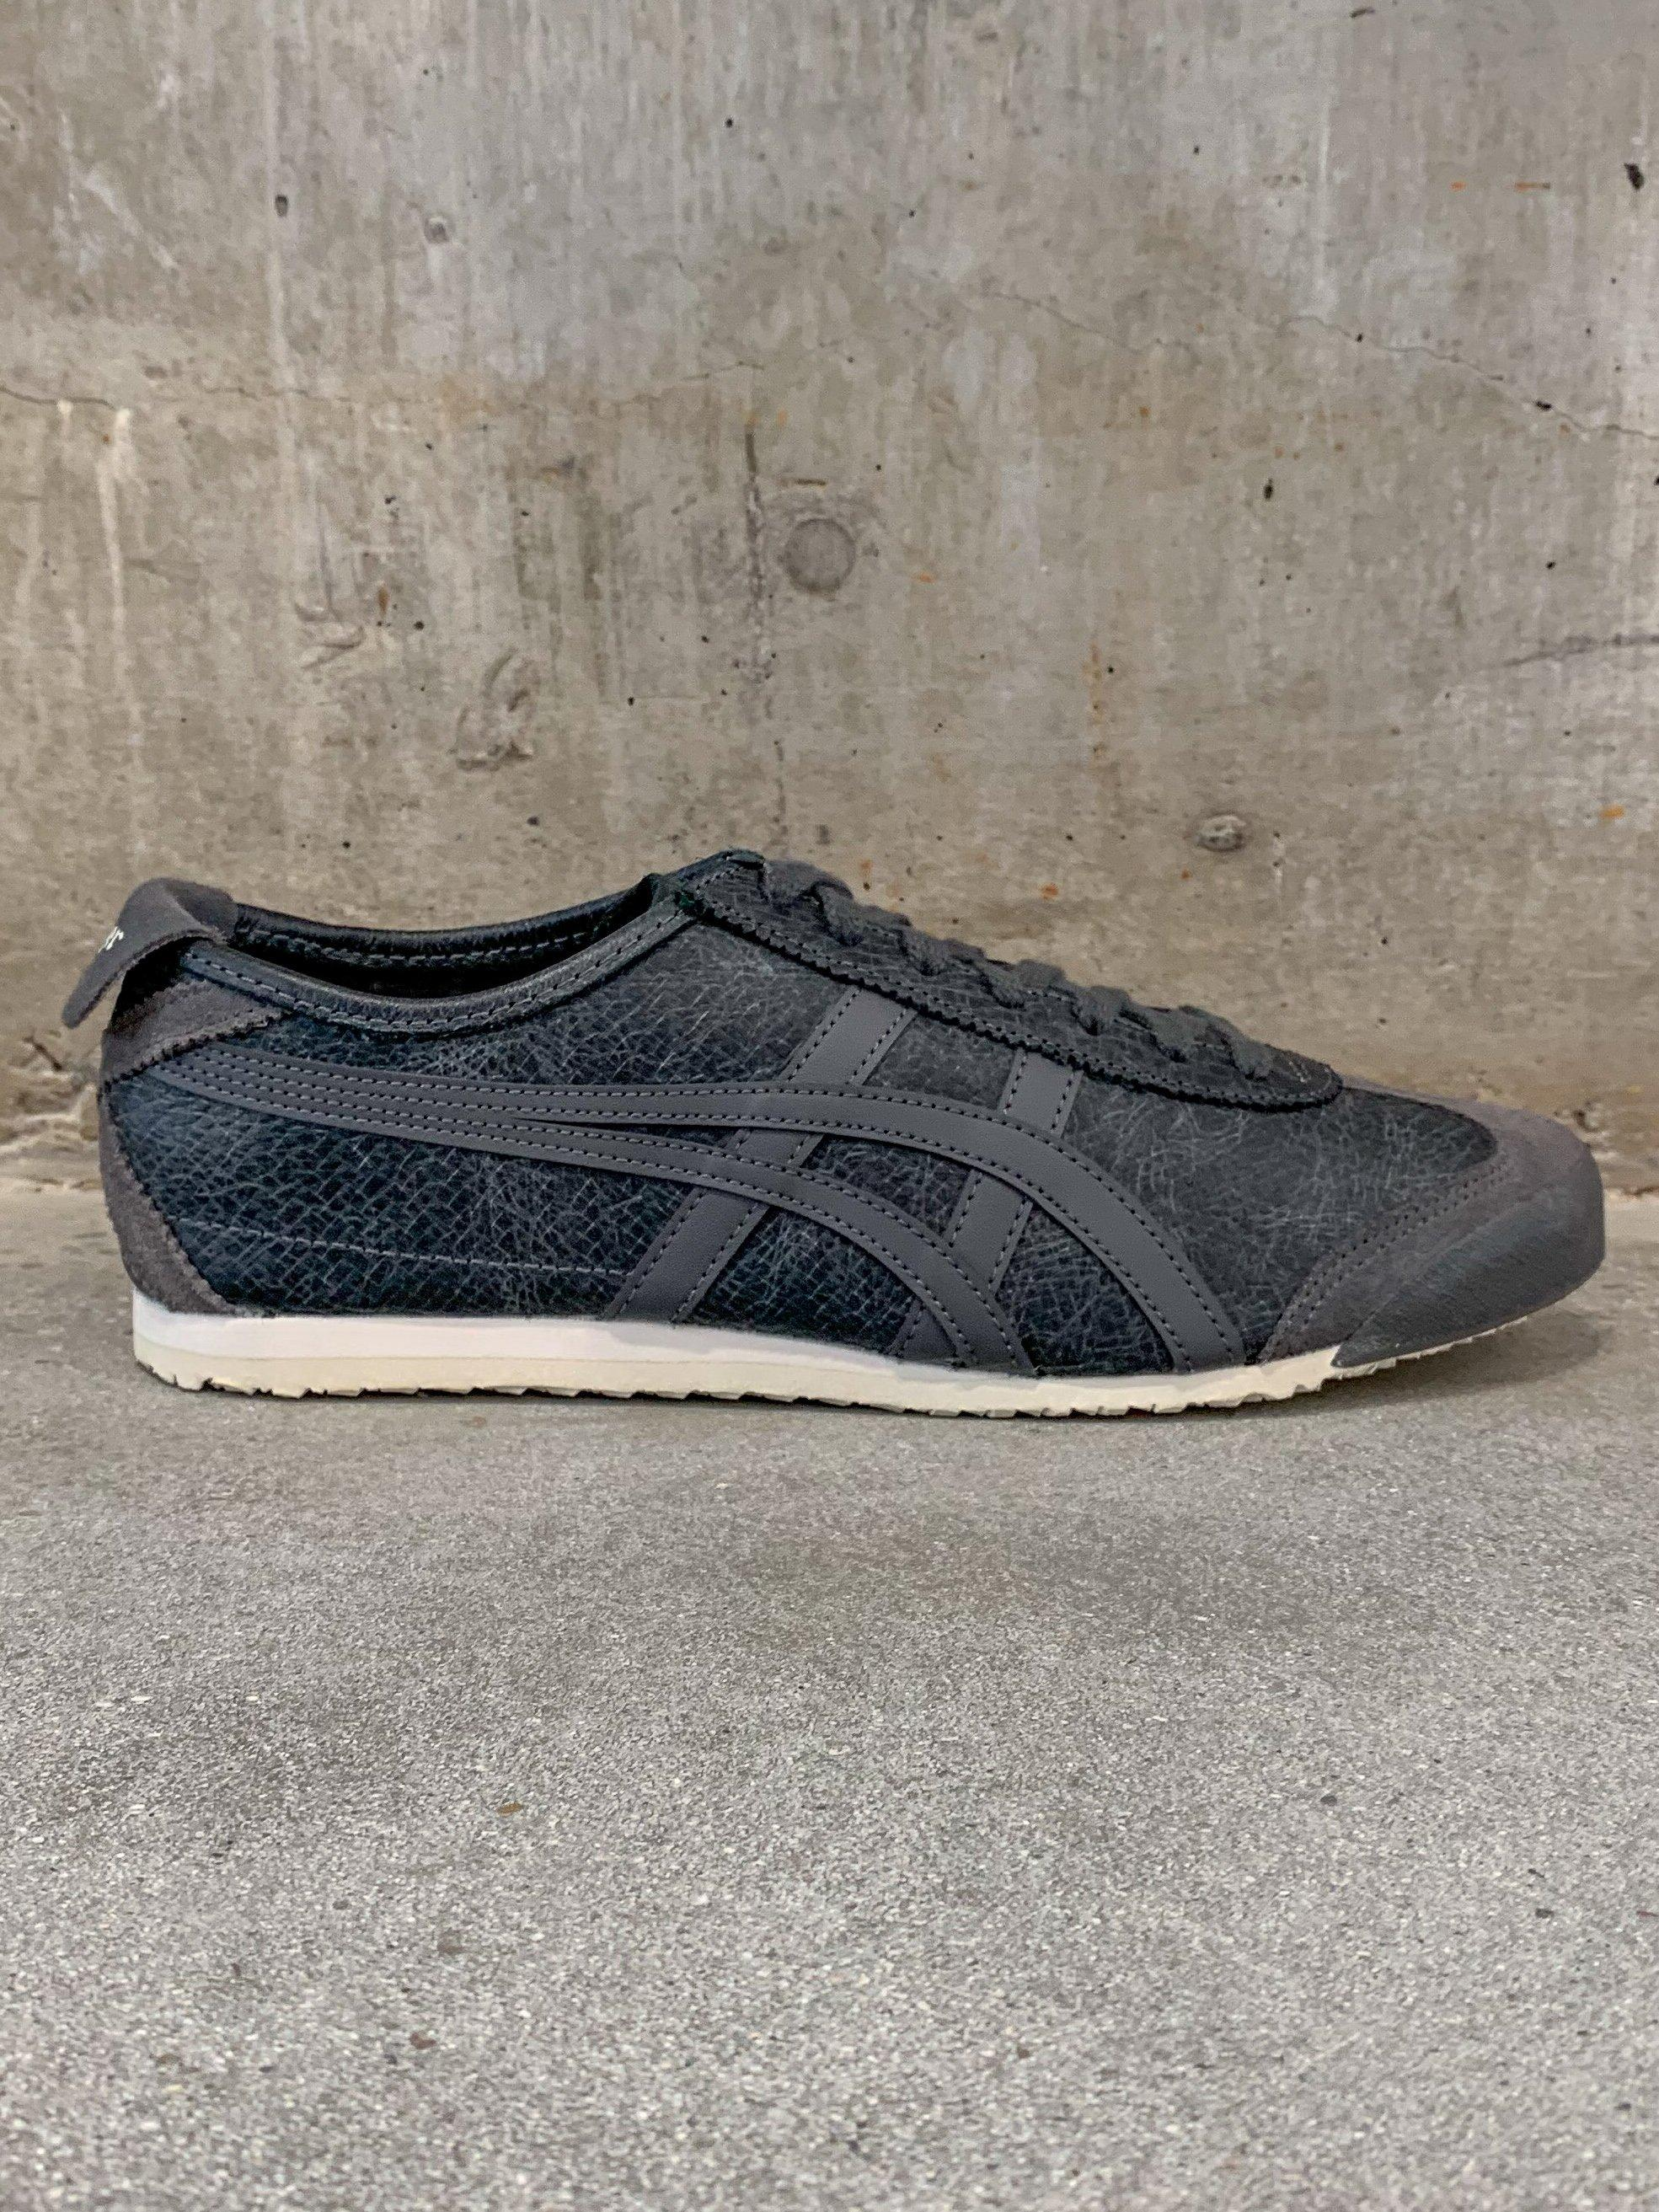 onitsuka tiger mexico 66 new york women's ultra precio